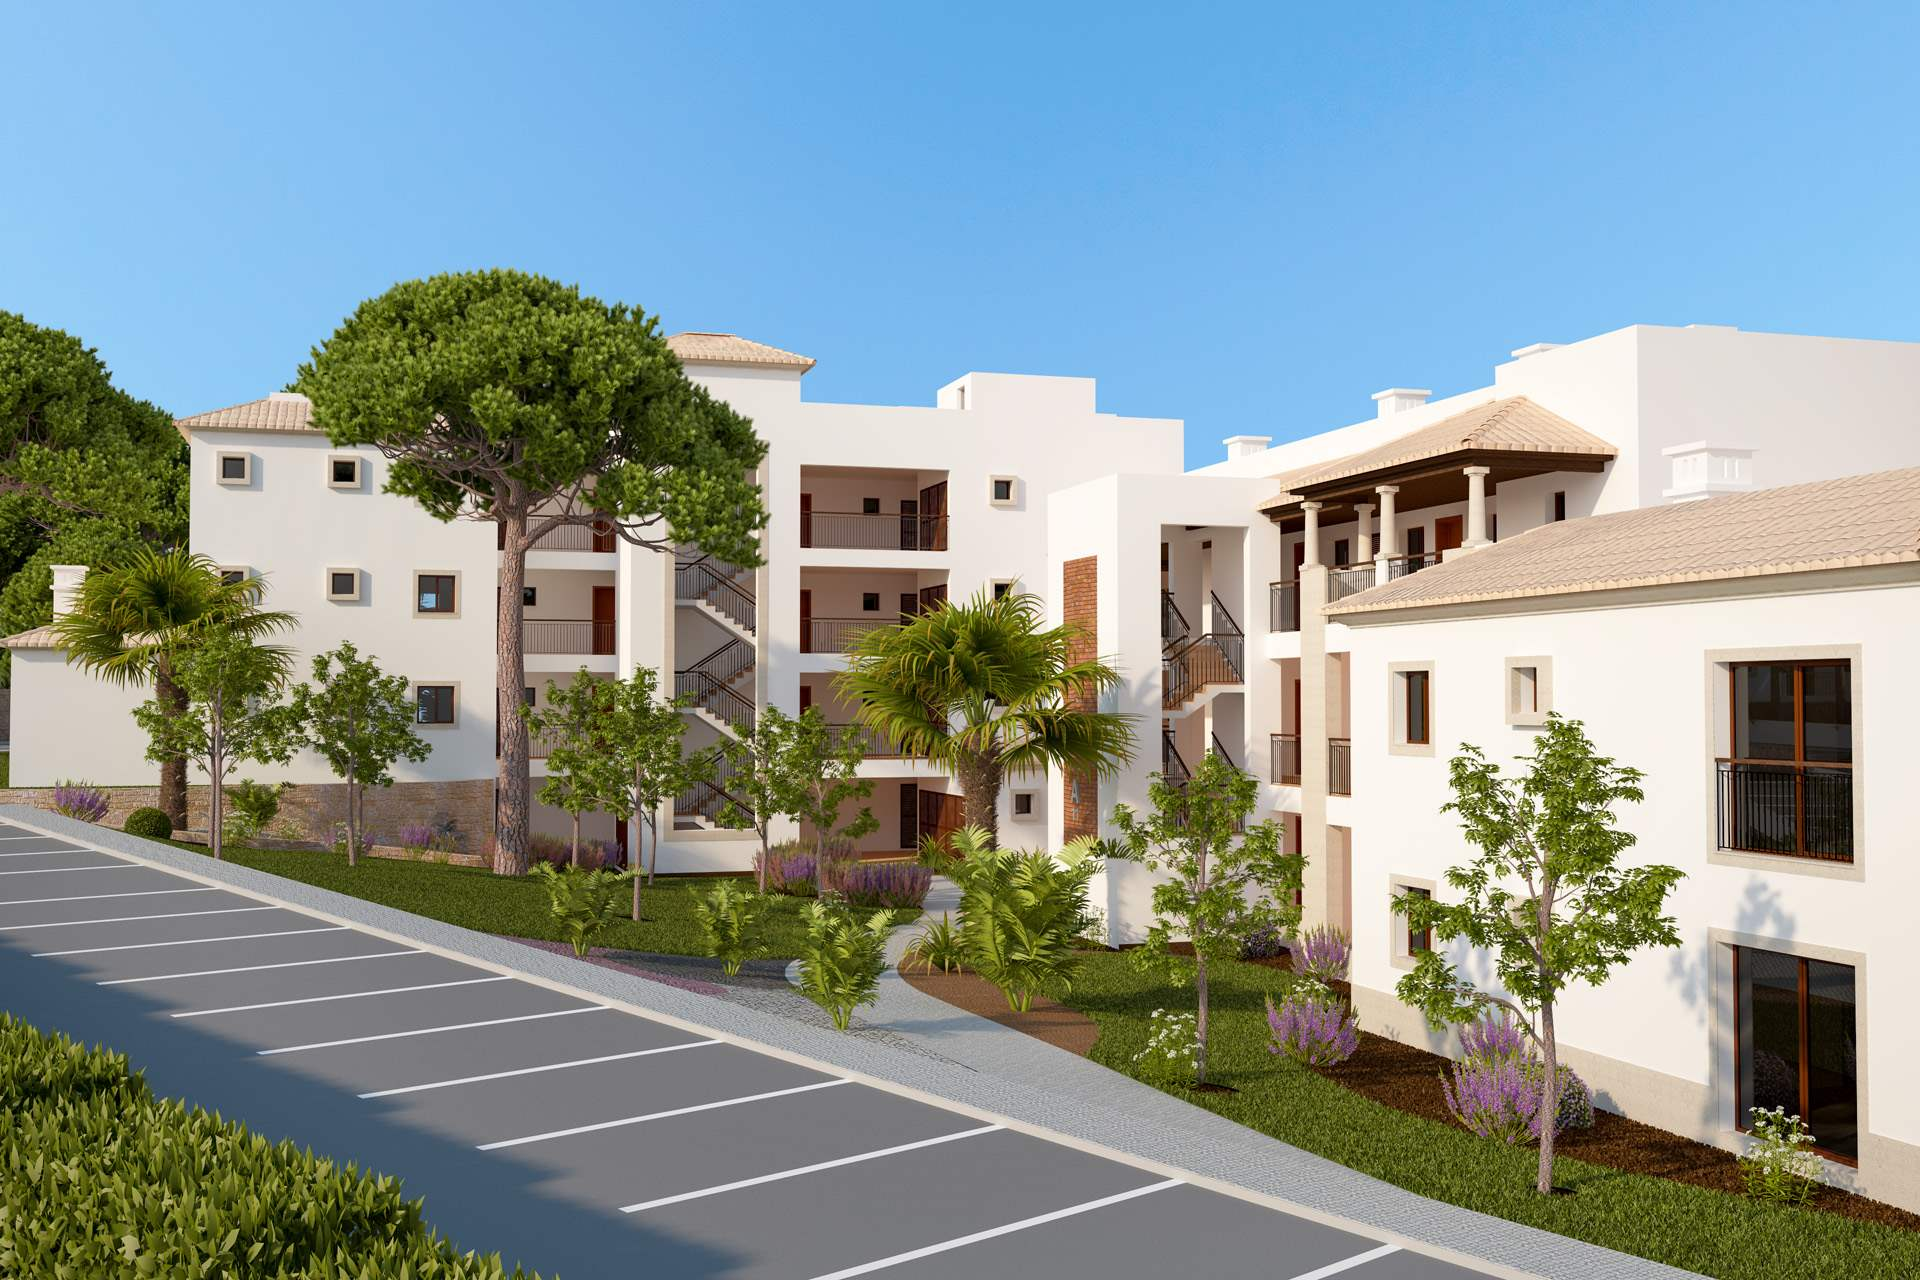 Pine Cliffs Gardens, Two Bedroom Suite, S/C Basis, 2 bedroom apartment in Pine Cliffs Resort, Algarve Photo #15